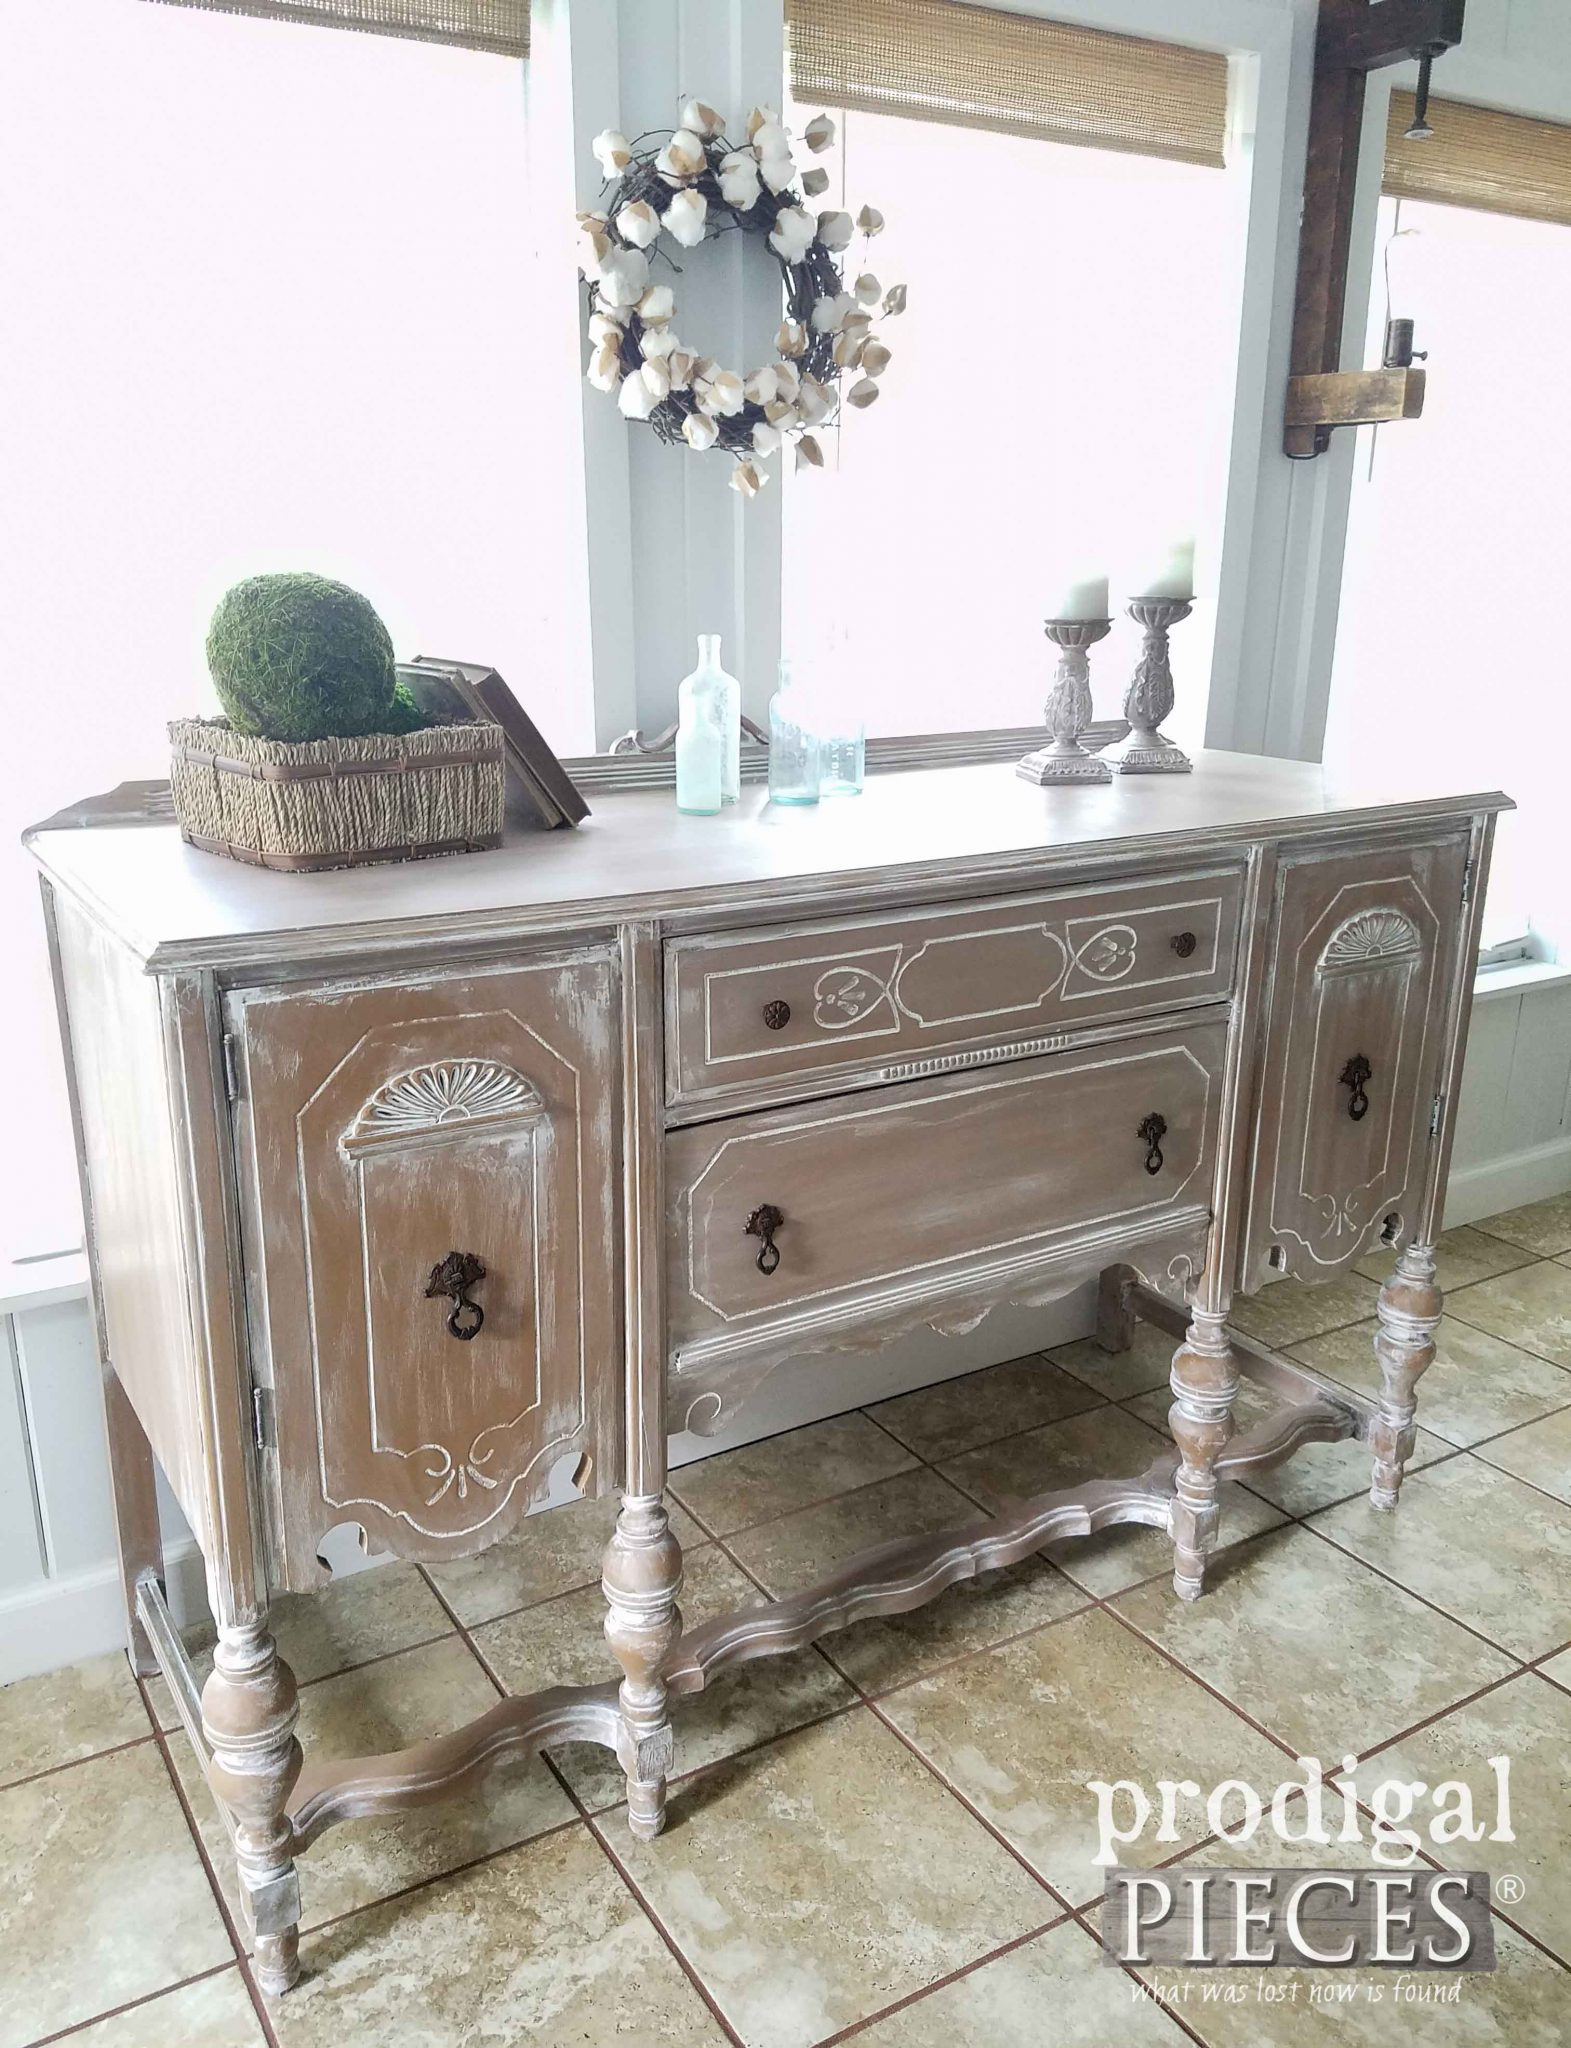 Gorgeous Antique Buffet Made New by Prodigal Pieces | prodigalpieces.com